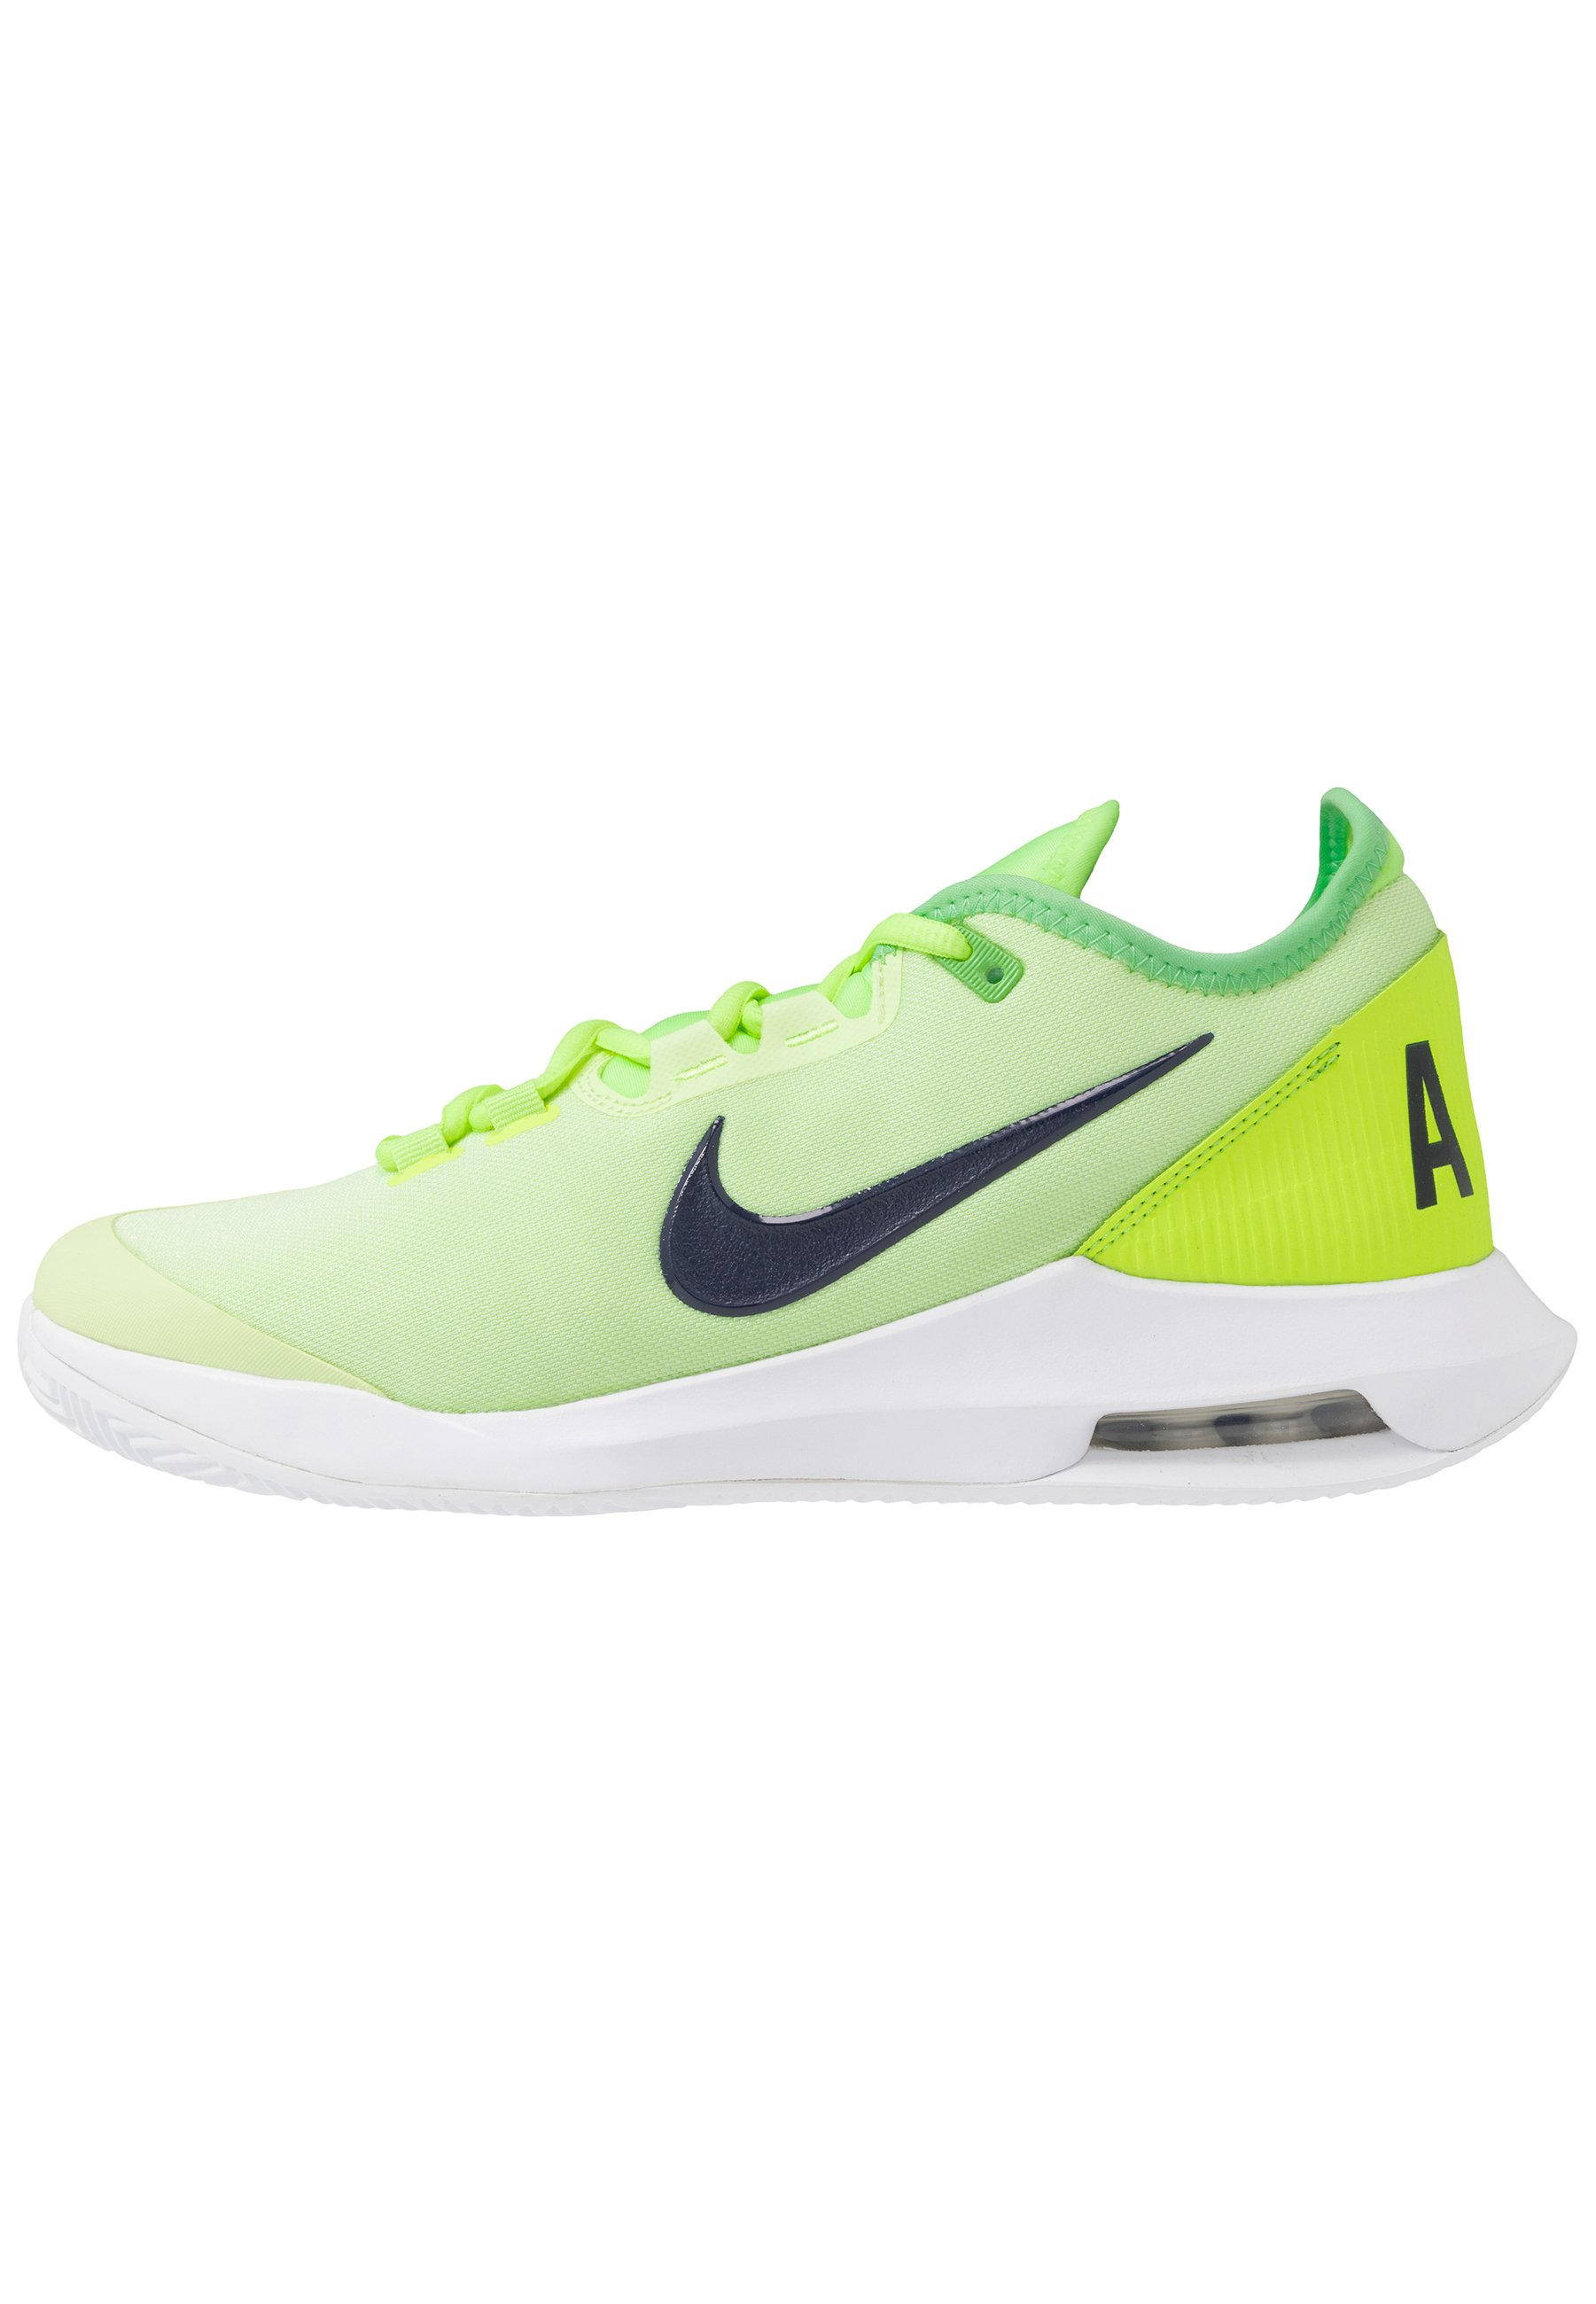 COURT AIR MAX WILDCARD CLAY Chaussures de tennis pour terre battueerre battue ghost greenblackened bluebarely volt